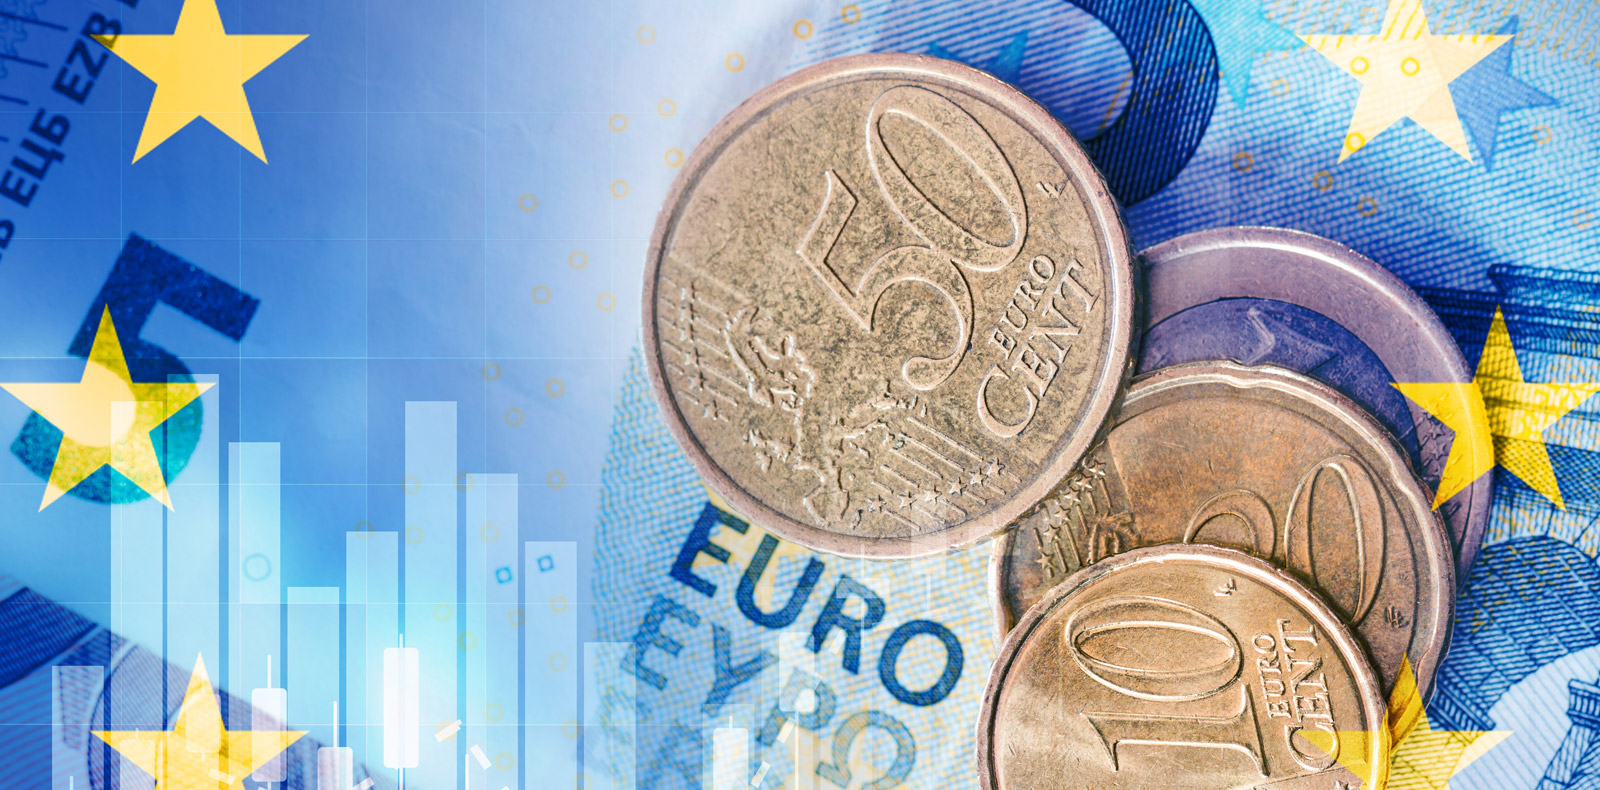 Euro performing well against the pound achieving best interbank rate since January